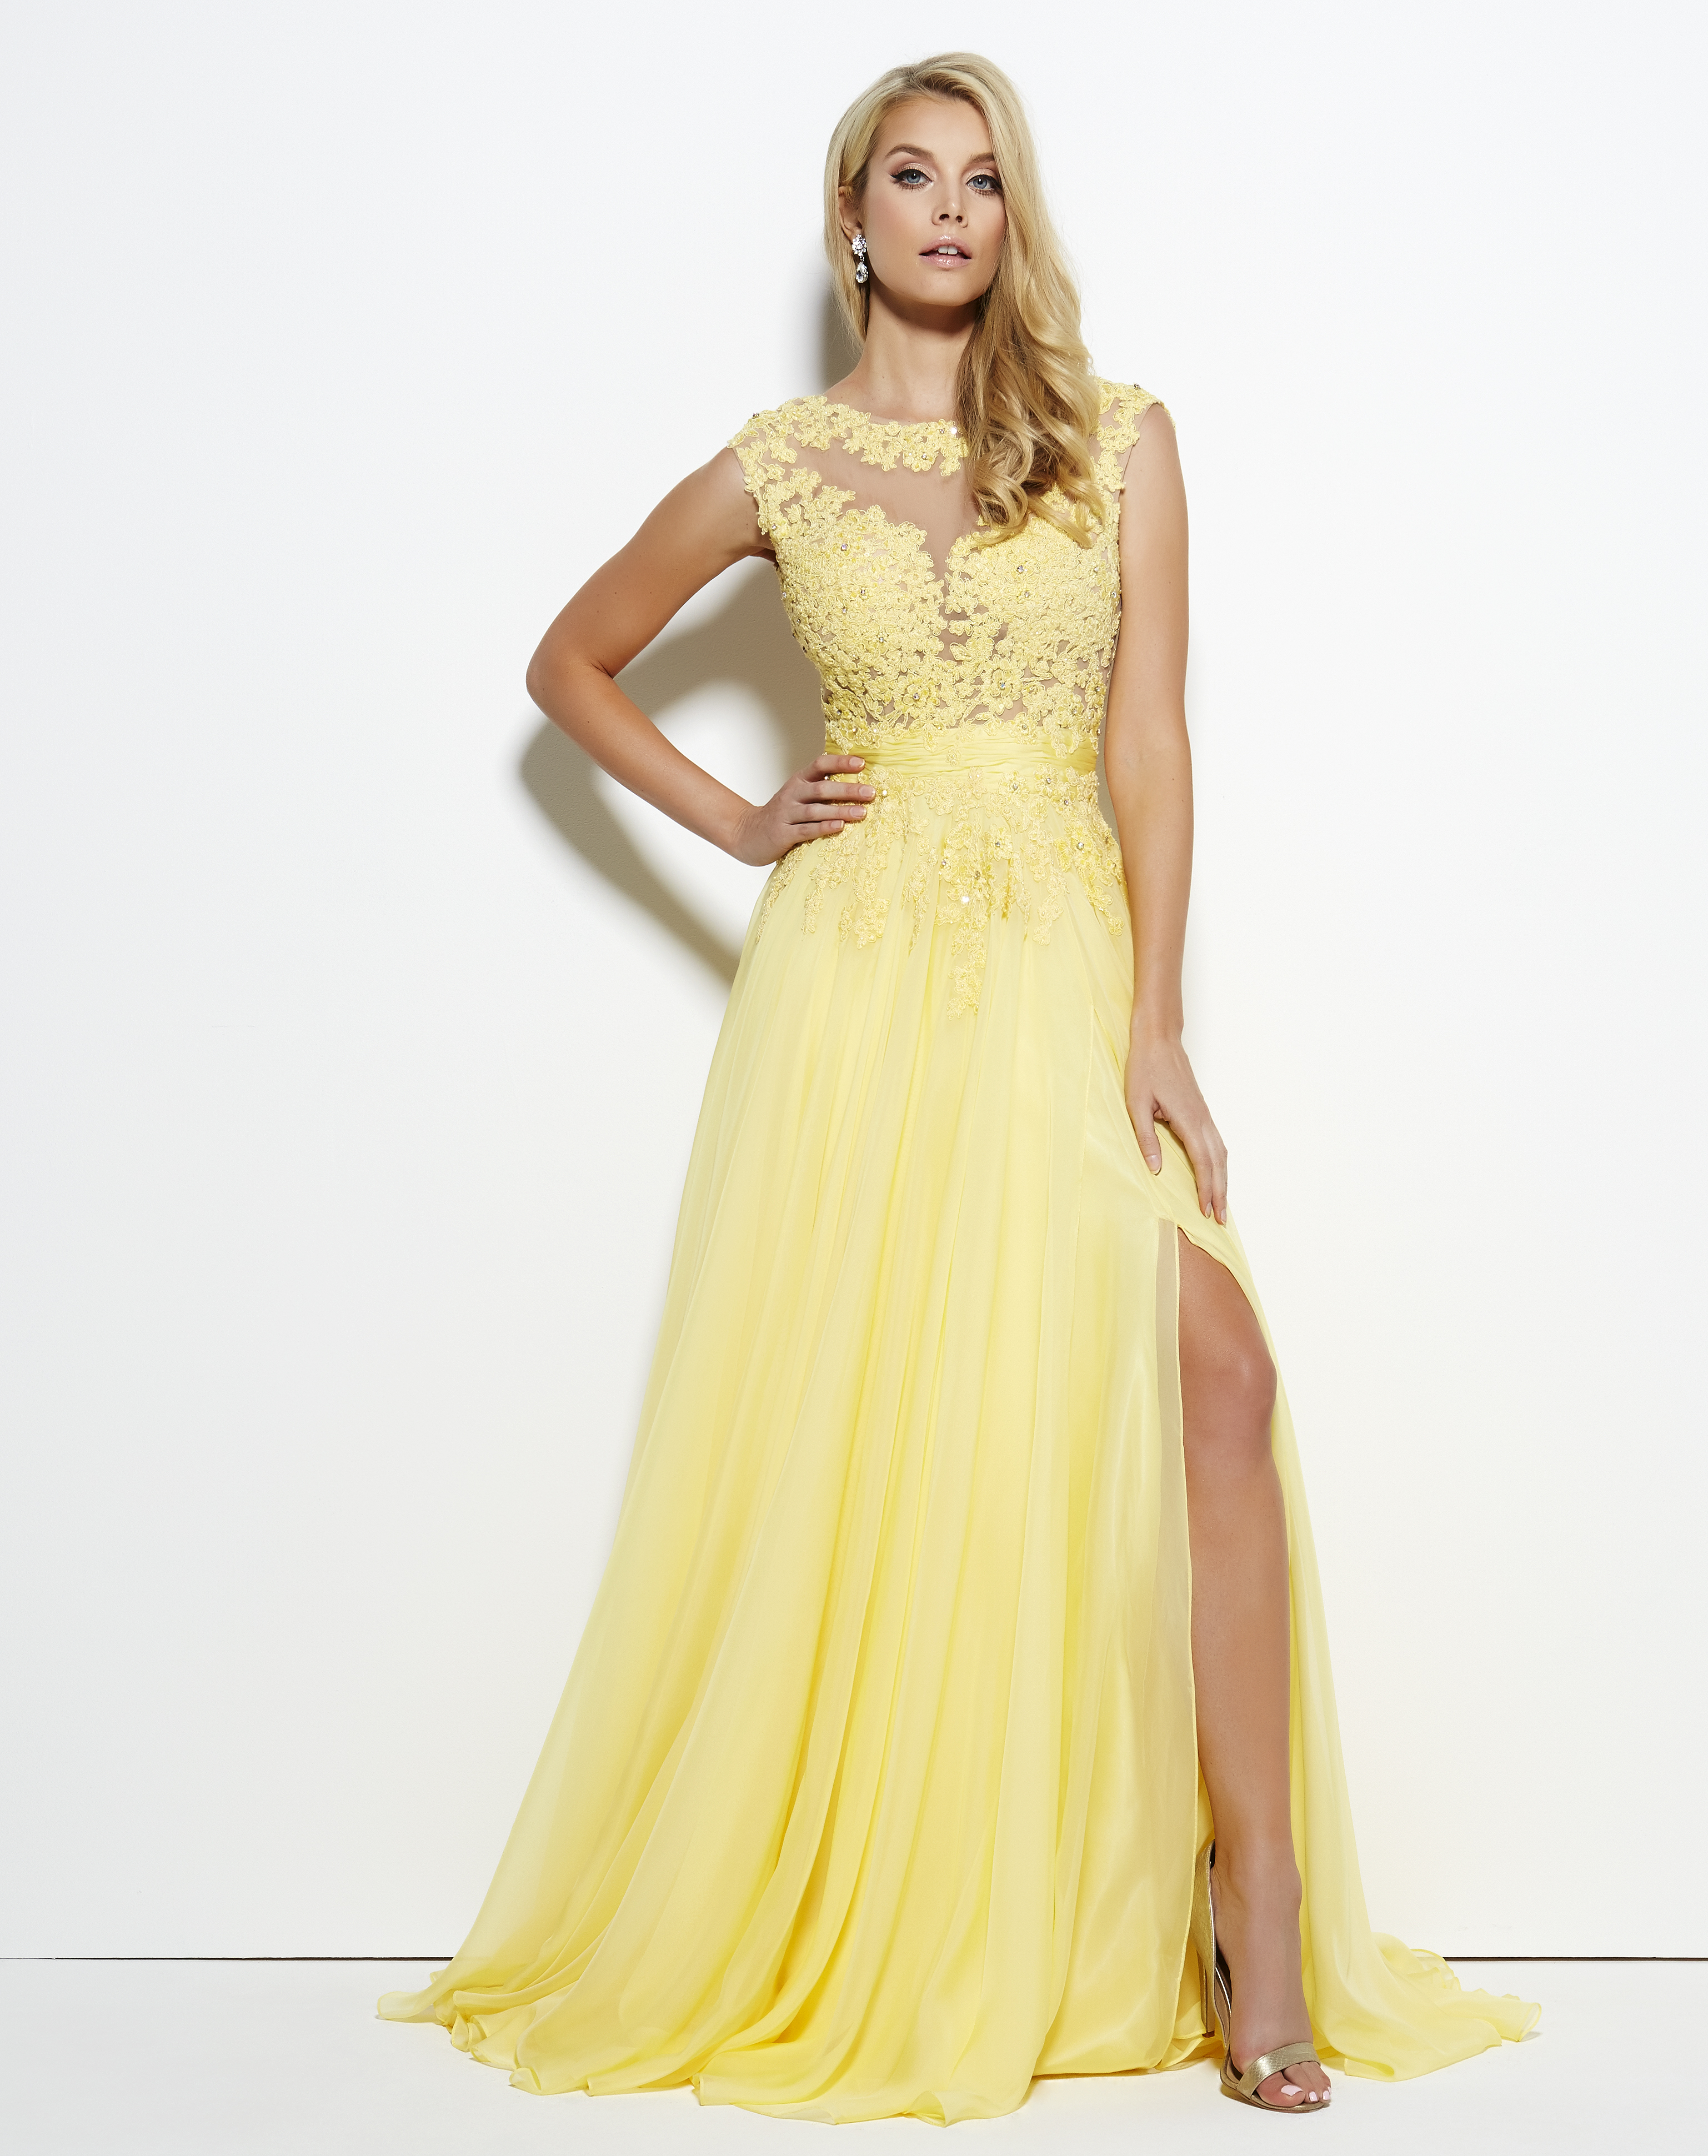 Outstanding Nordstrom Prom Dresses Ideas - Wedding Dress Ideas ...